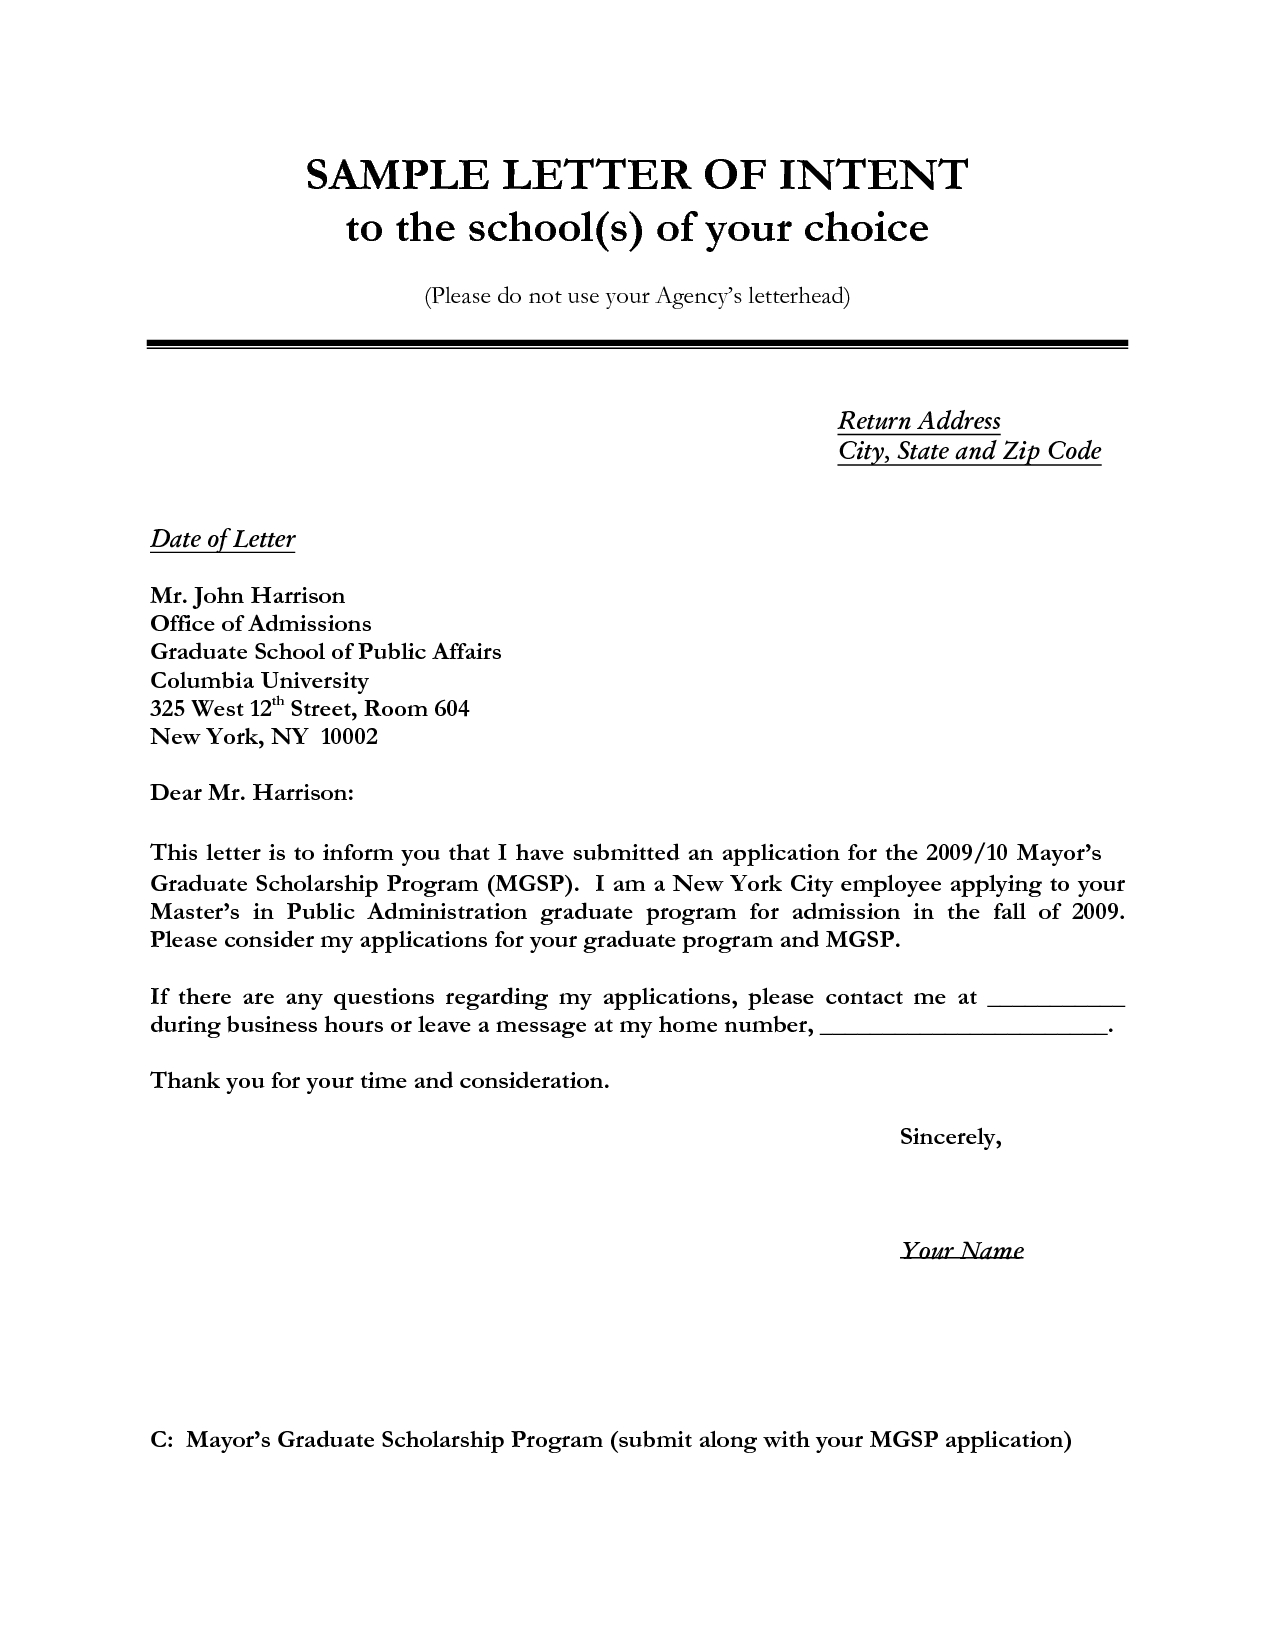 Commercial Letter Of Intent Template - Letter Of Intent Sample